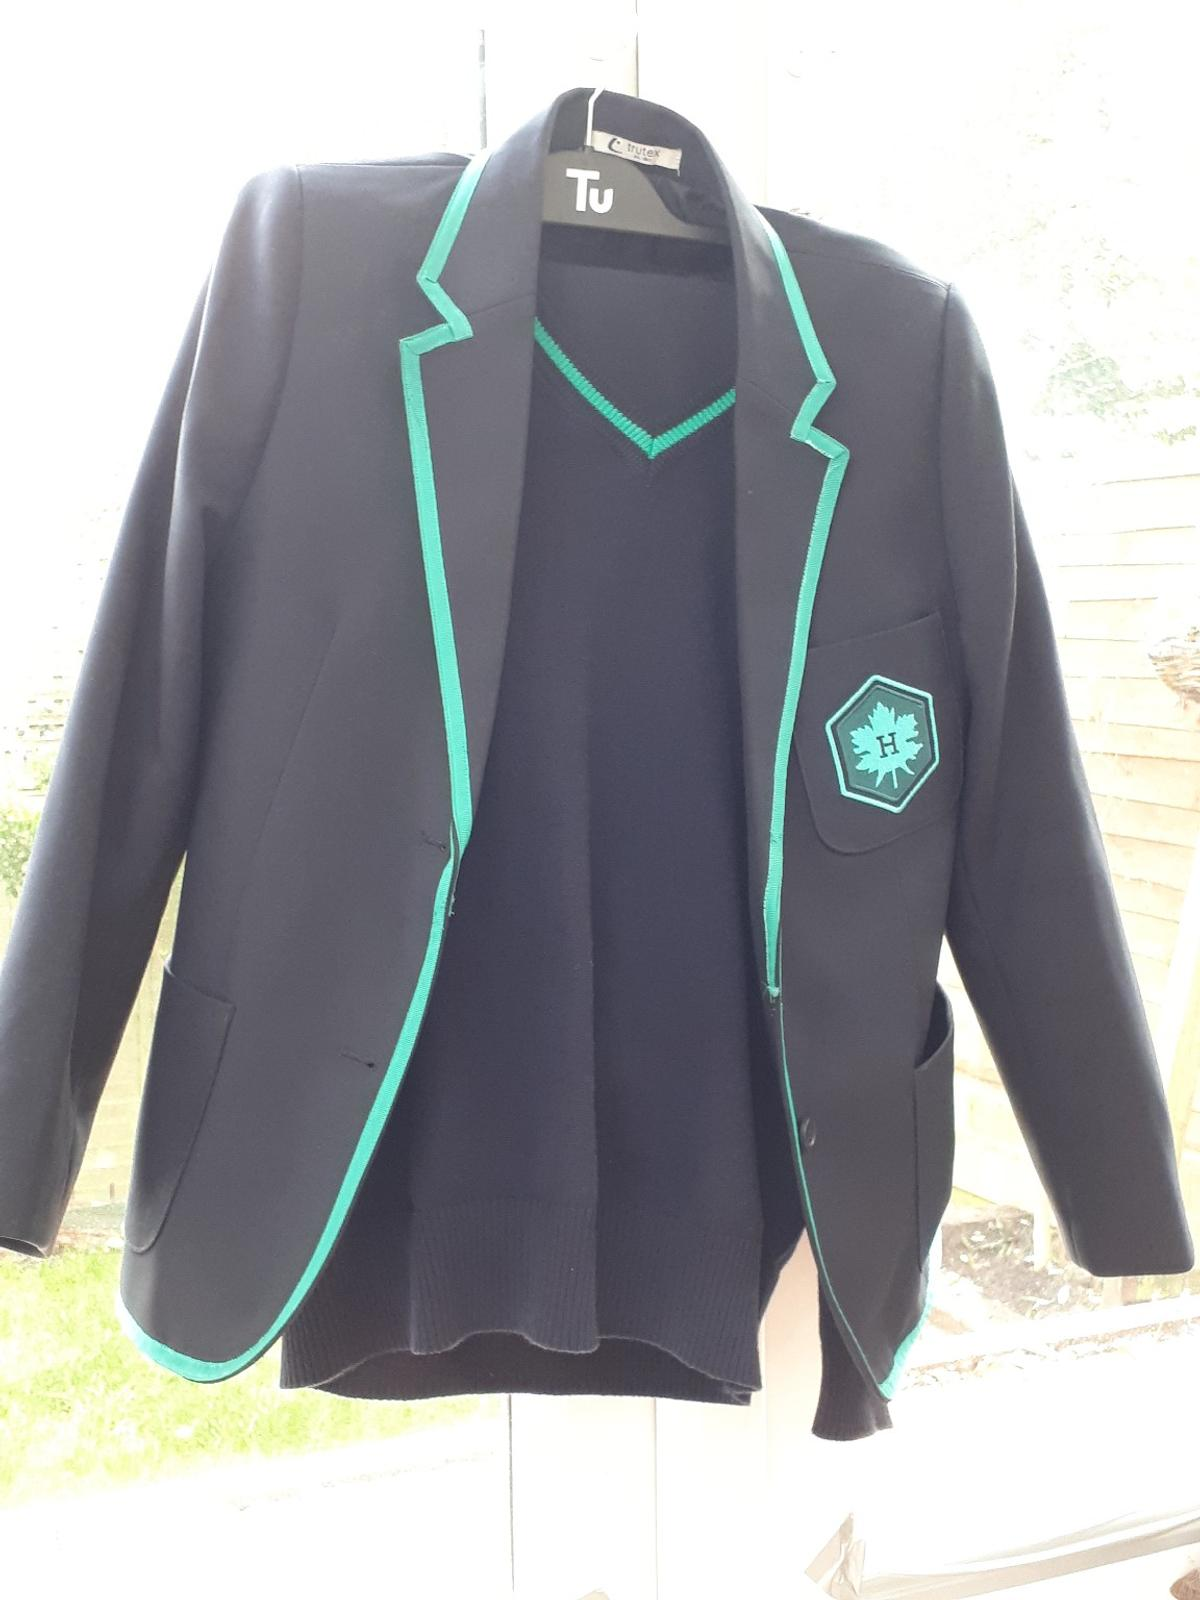 d86f4ea2 Brand new Ark helenswood uniform in TN37 Hastings for £30.00 for ...